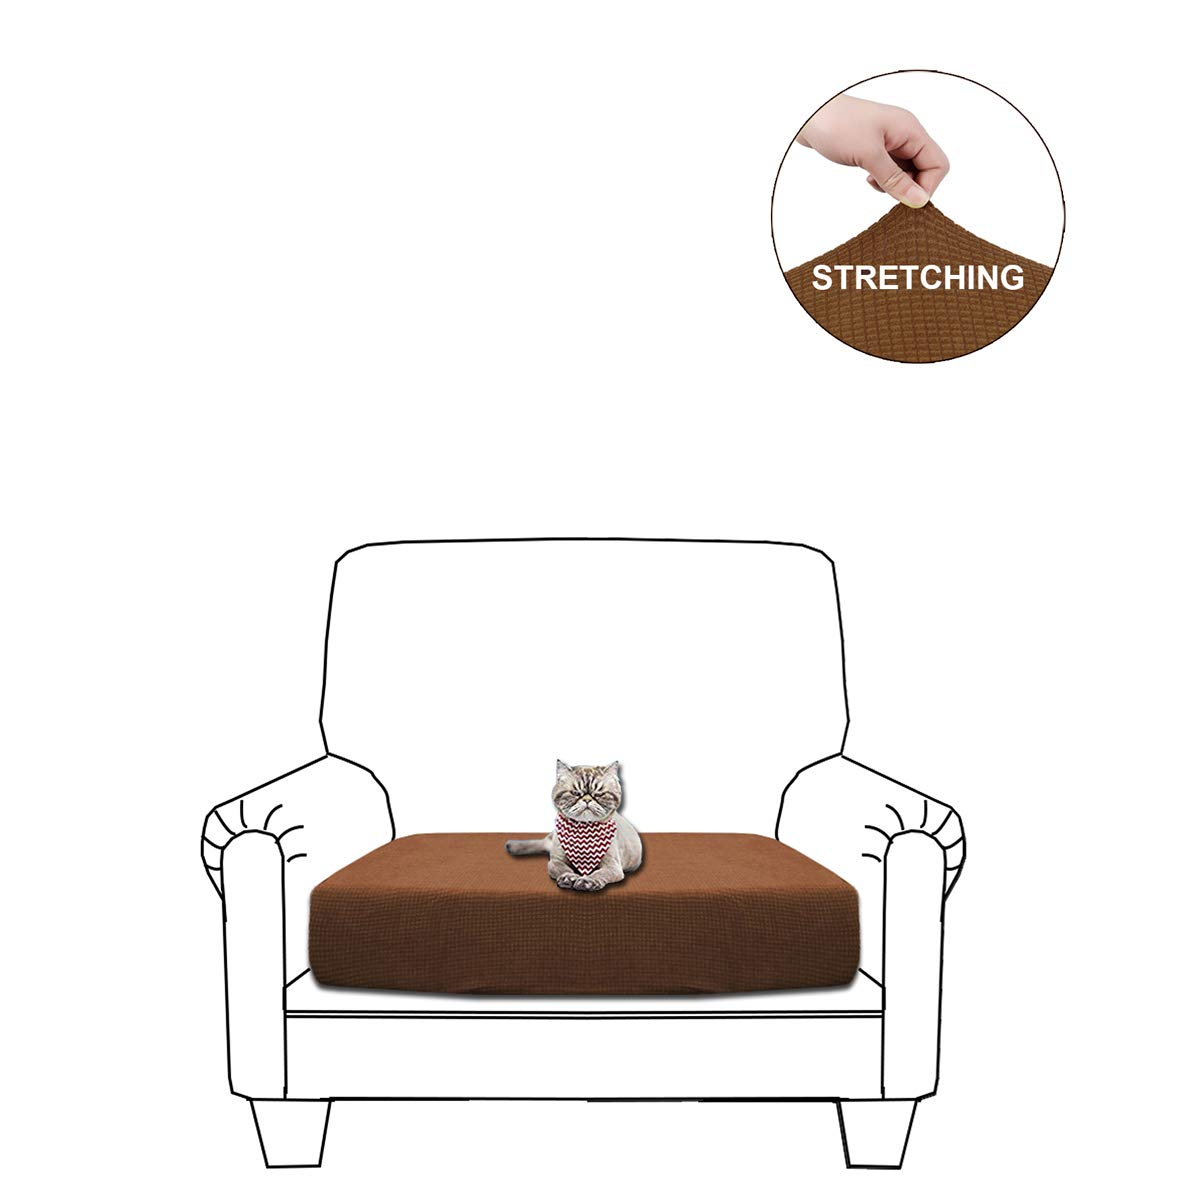 WOMACO Sofa Cushion Cover, Water Repellent Couch Slipcover Stretch Cushion Protector for Sofa Seat (Brown, Chair Cushion)